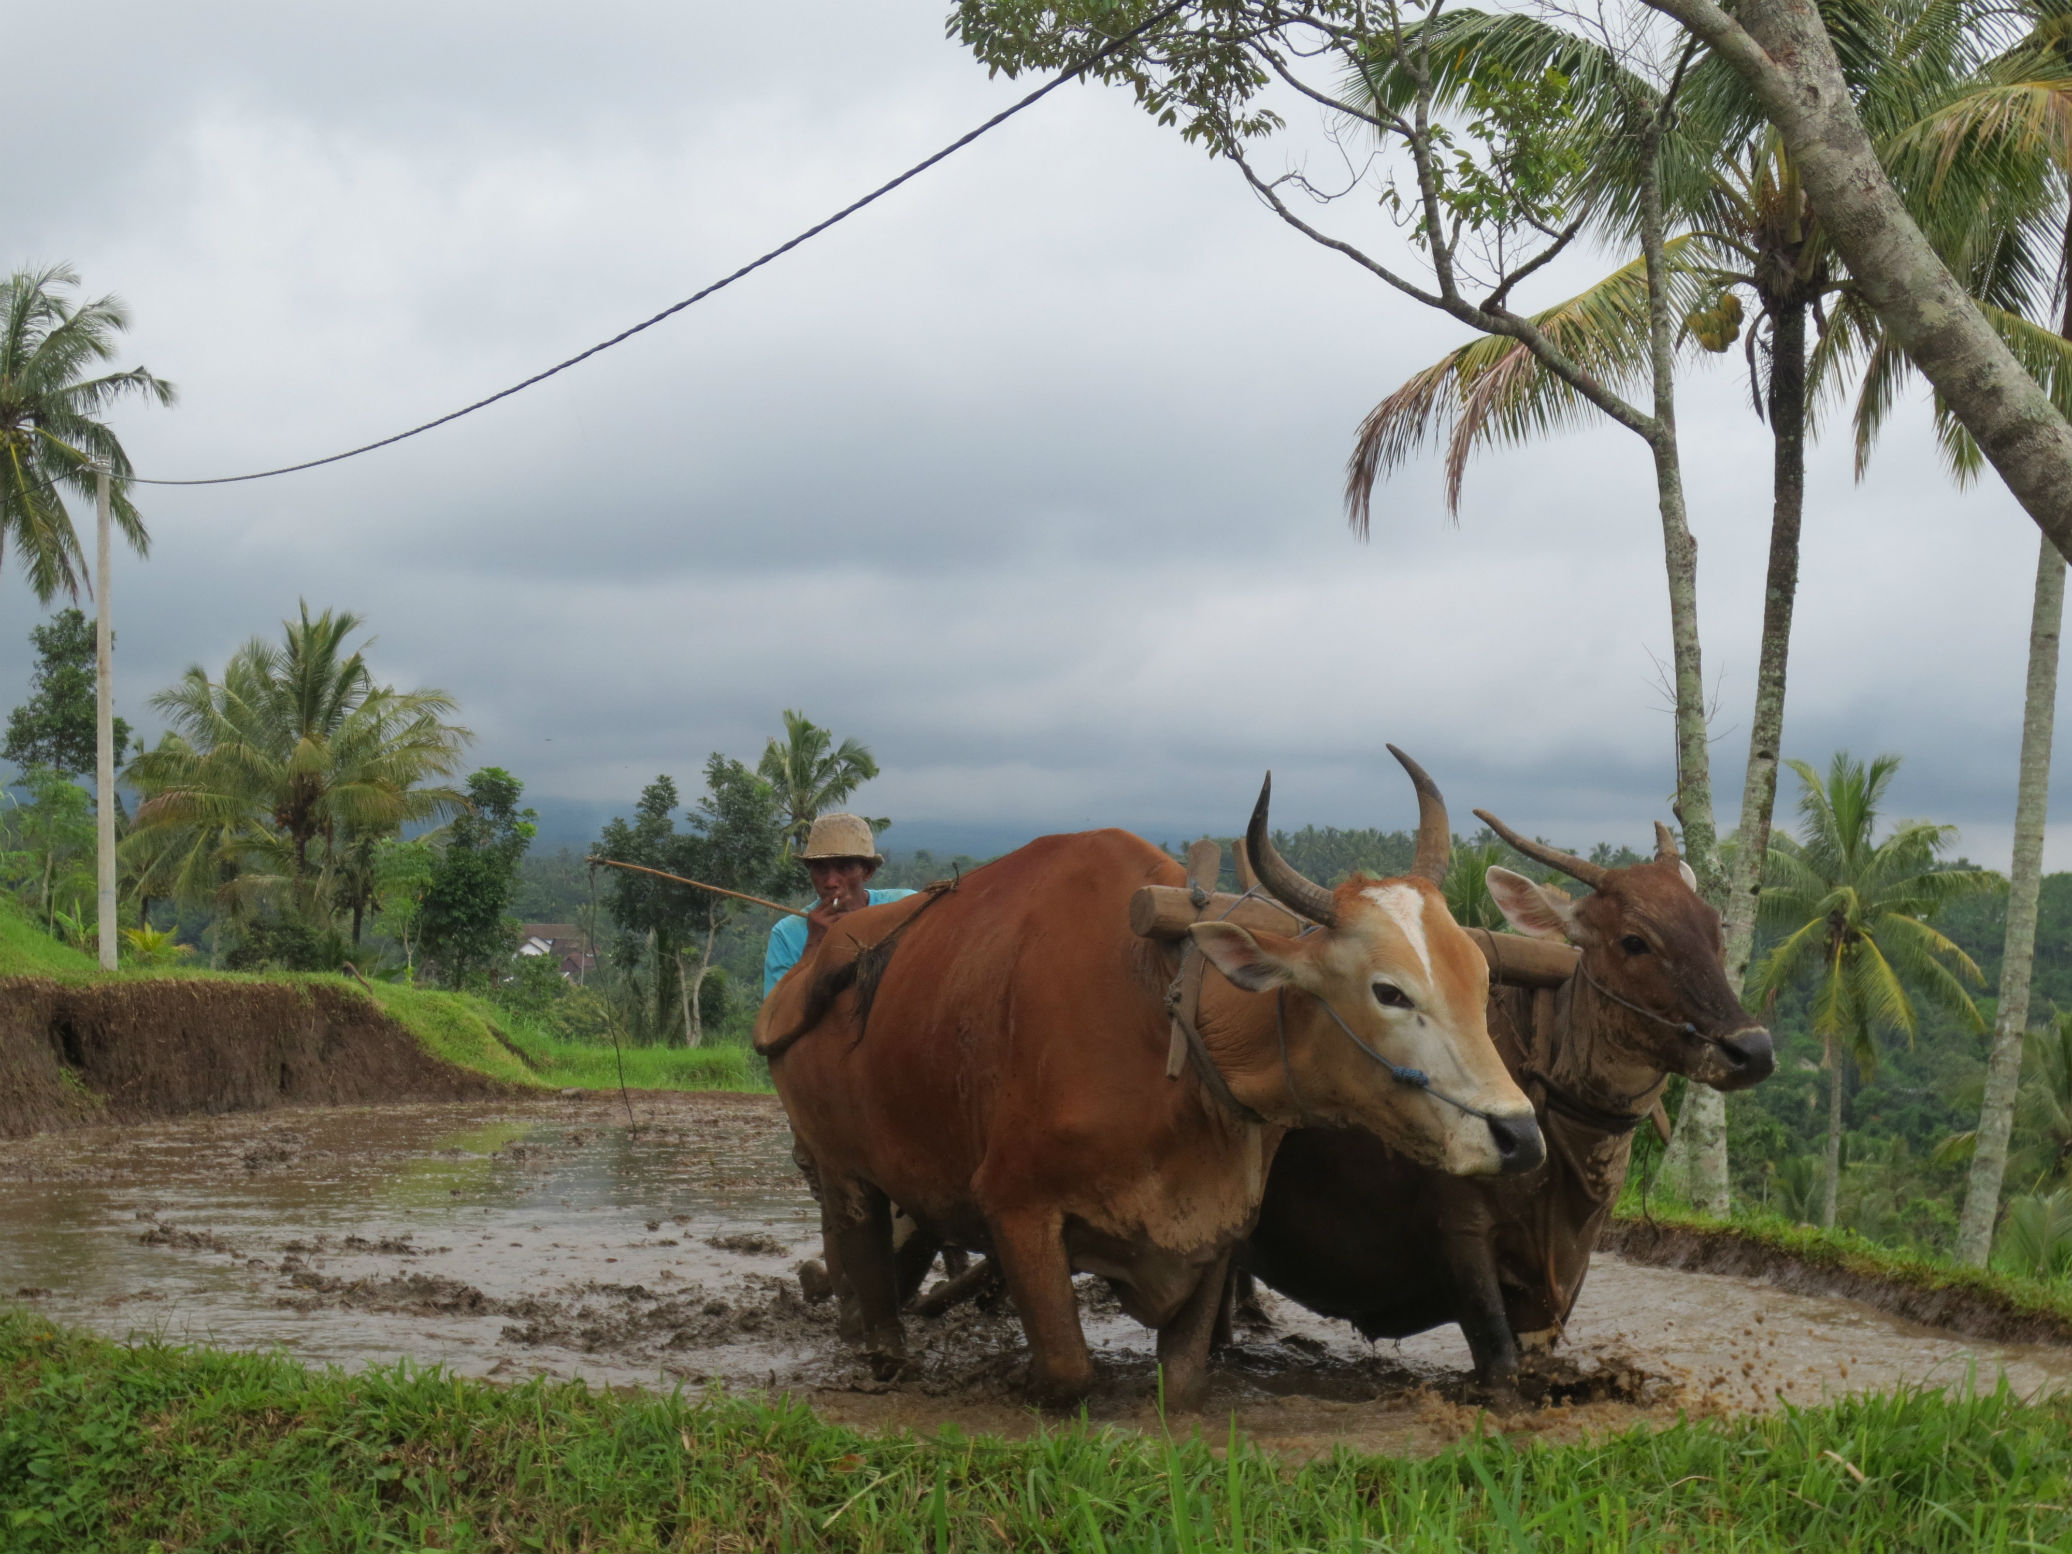 Buffalo working the paddy fields